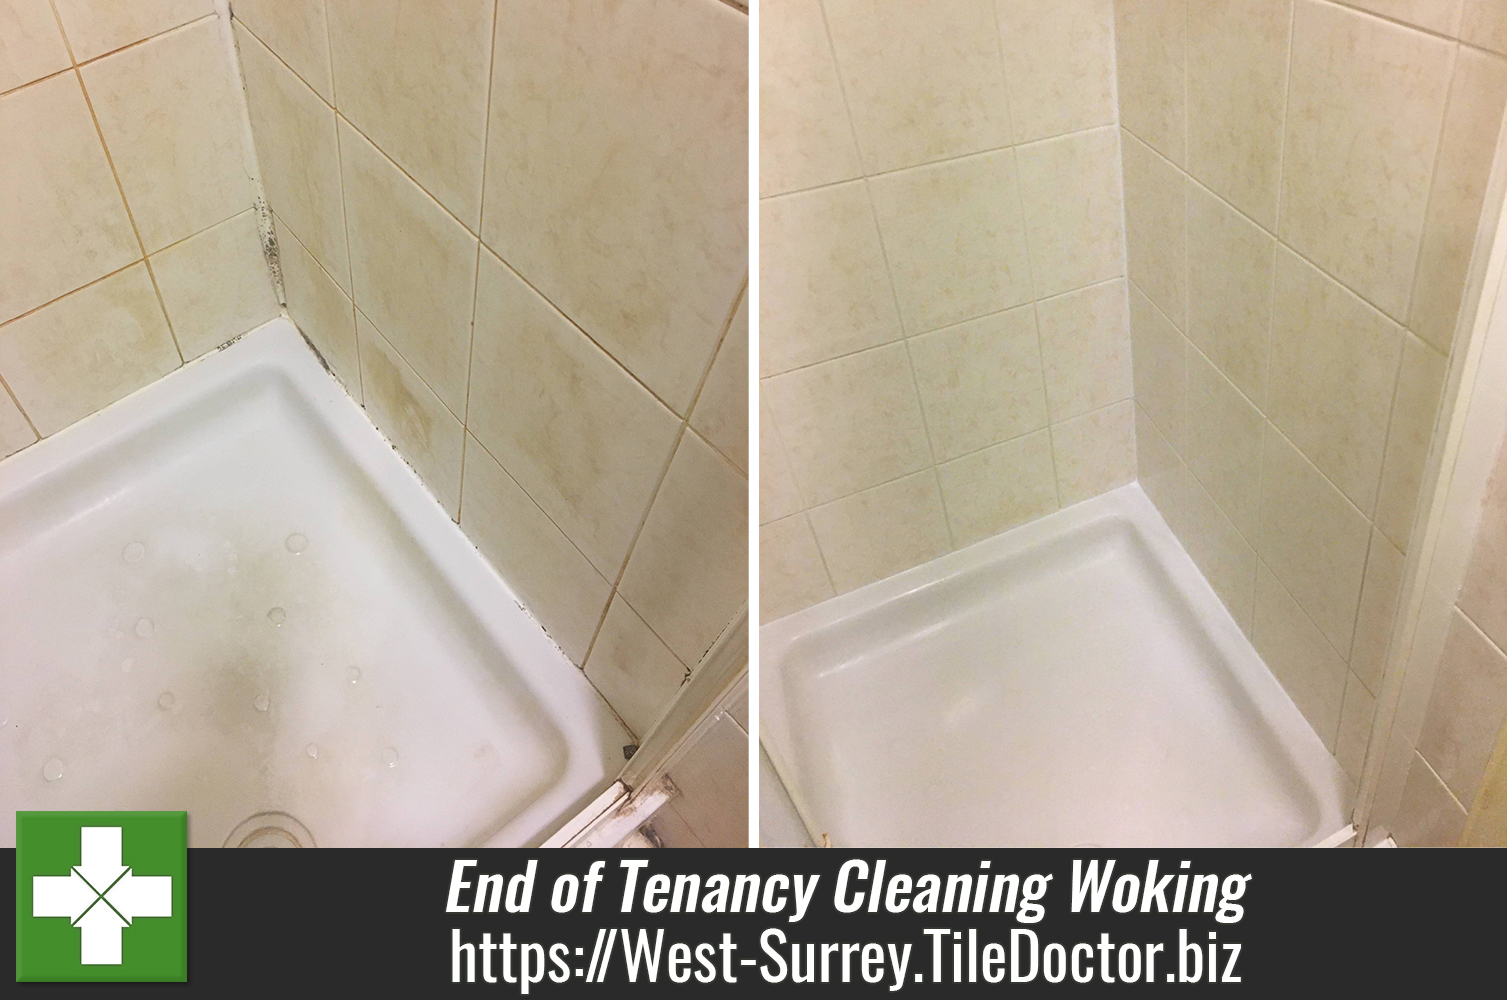 Ceramic-Tiled-Shower-Curbicle-Before-After-Renovation-Woking